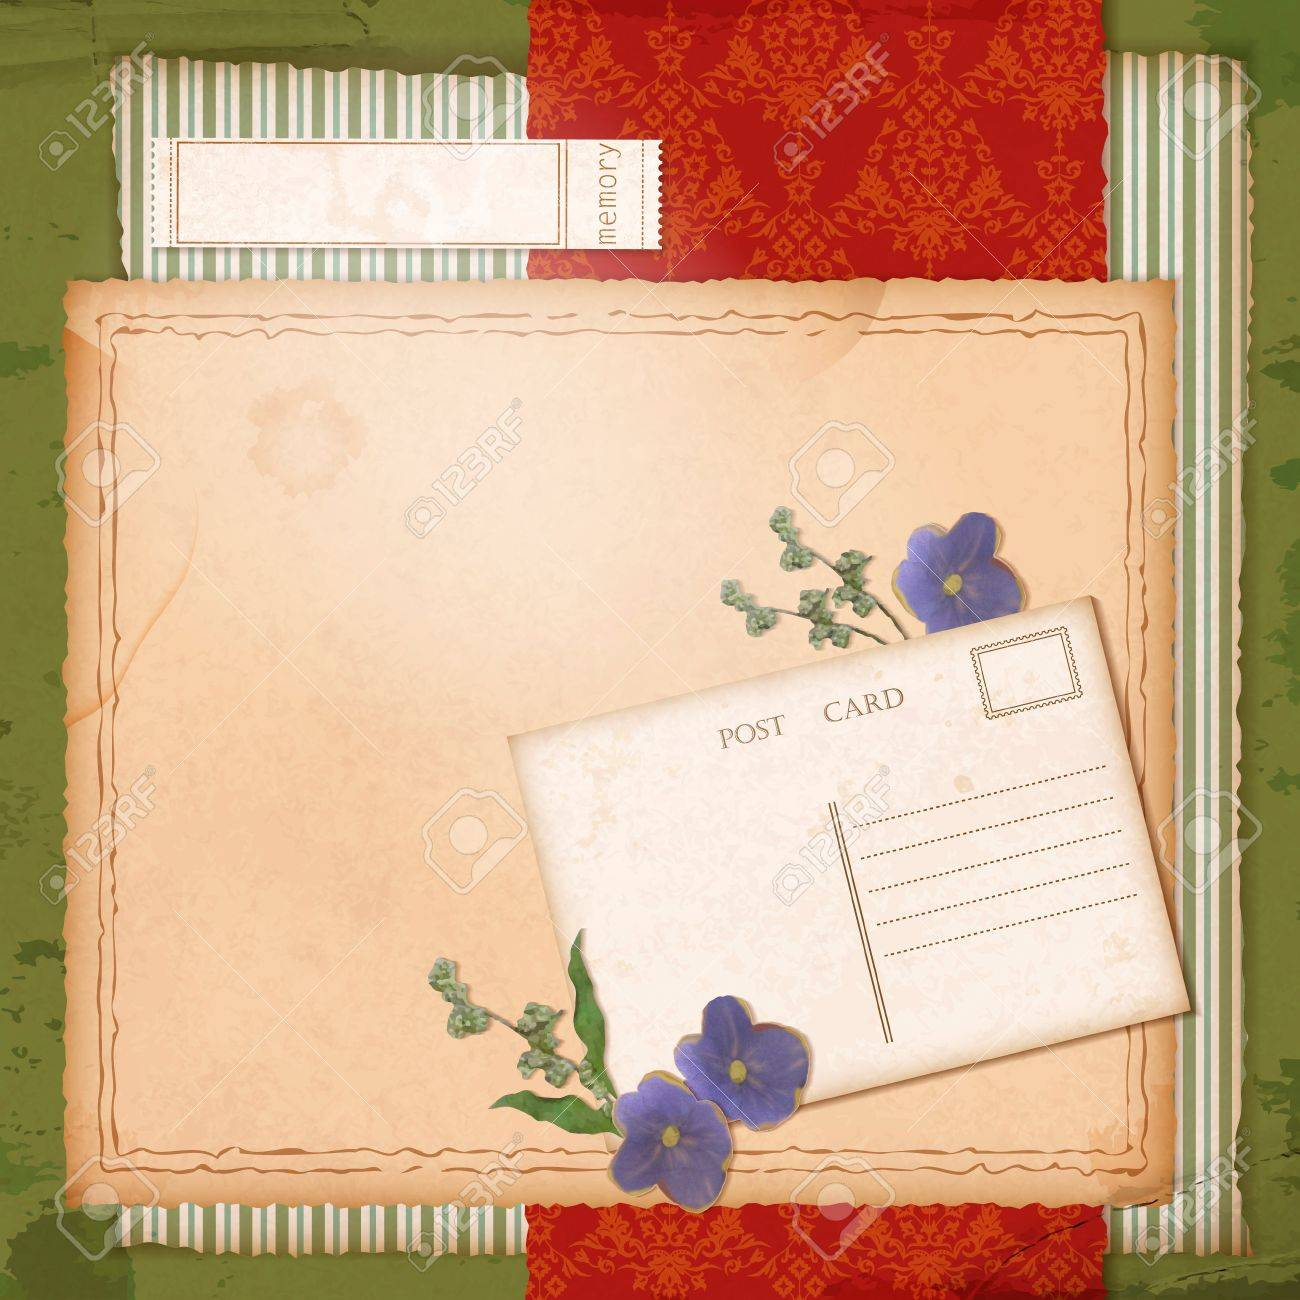 How to scrapbook dried flowers - Scrapbook Retro Design With Grunge Paper Background Dried Flowers Violets Grass Blades